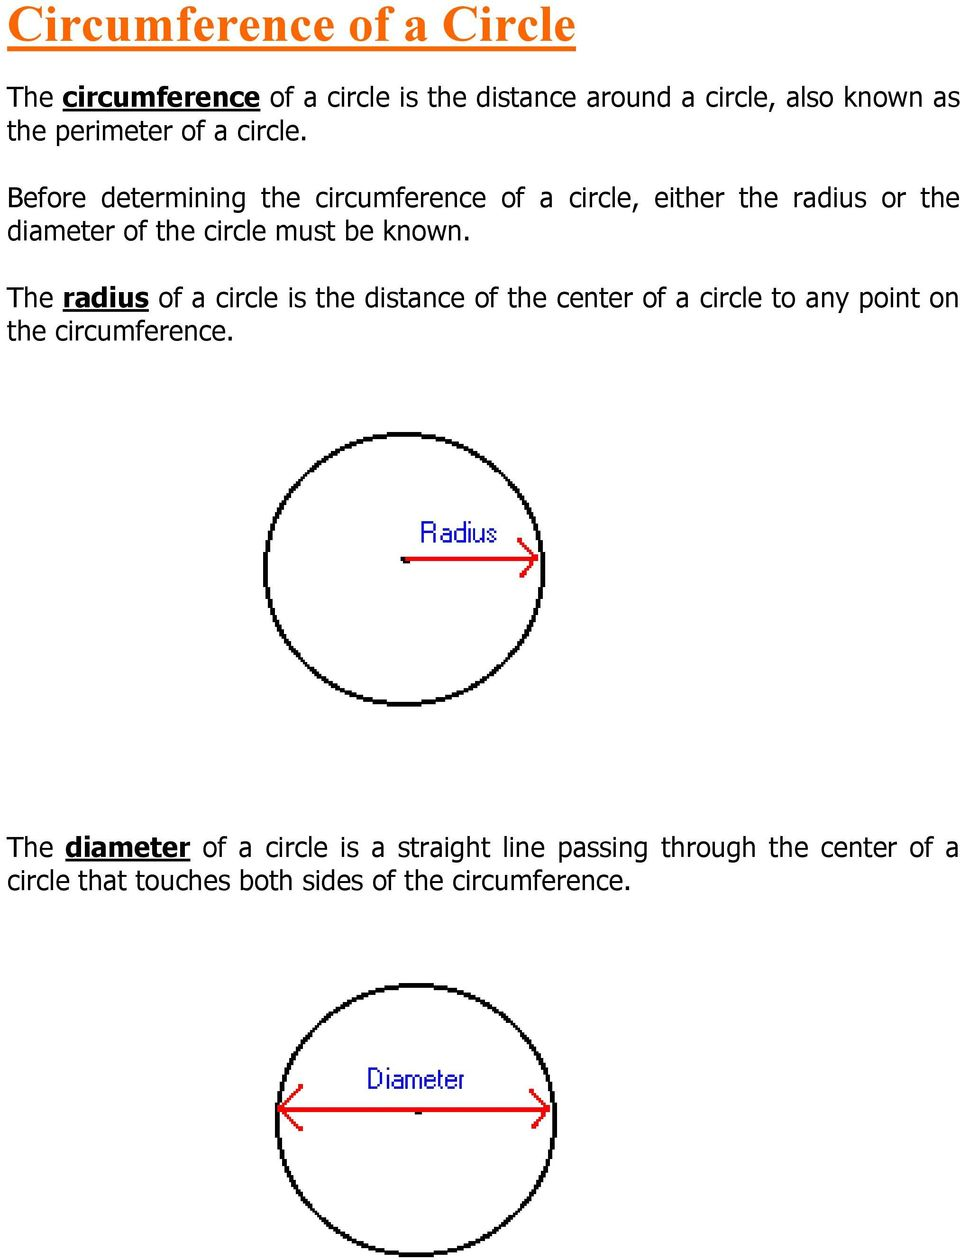 Before determining the circumference of a circle, either the radius or the diameter of the circle must be known.